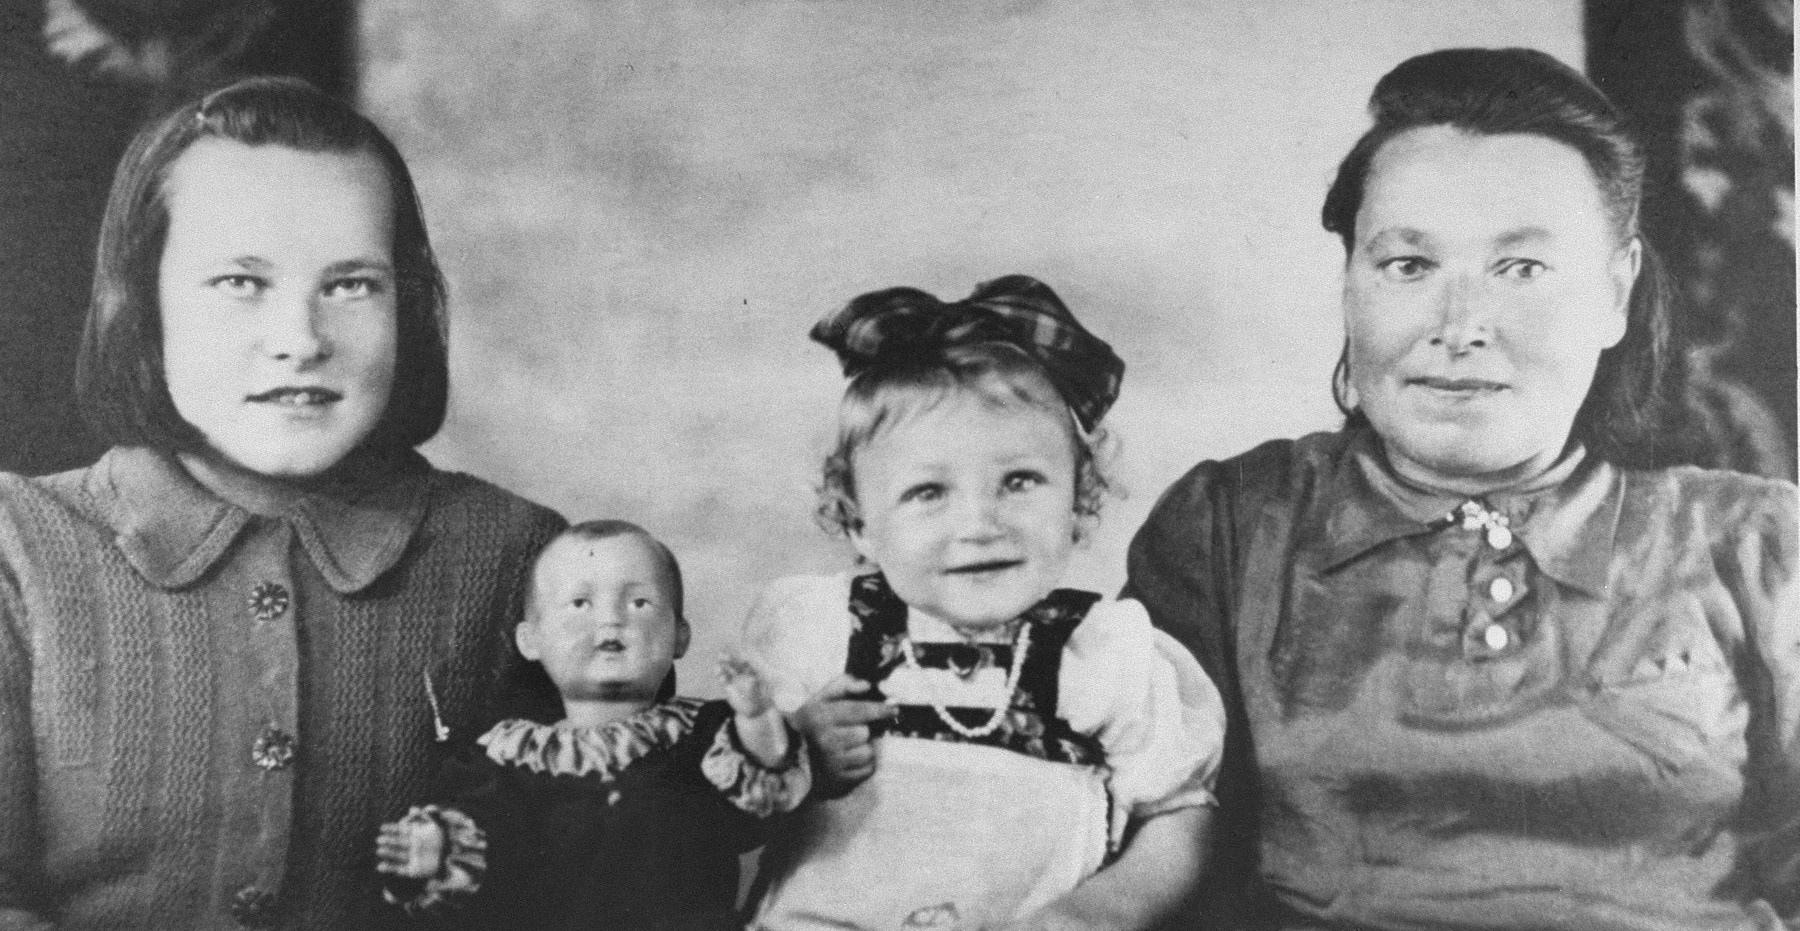 A Jewish child in hiding poses with members of the Lithuanian family that concealed her.  Pictured is the donor, Josephina Martul (right), and her daughter, Leonarda-Luisa (left)   Rose Levin (now Weinberg) is the daughter of Ida and Yossef Levin.  She was born in  March 1941 in Vilna.  Her older sister, Chaya, was born in 1936.  Her father was shot by the Germans shortly after the beginning of the German occupation.  Rose's mother then placed her with a Lithuanian family named Martul.  Rose passed as a relative whose name was Vera Martul.  After the death of her foster mother, Josephina Martul, Rose was cared for by the sixteen year-old daughter of the family, Lusia  Martul-Budrikiene.  Rose remained with Lusia Budrikene until 1957, when an aunt from Canada, Mrs. Friedman,  located her and arranged for her emigration to Toronto.  In 1993, Yad Vashem recognized Josephine Martul and her daughter Lusia Budrikiene as Righteous Among the Nations.